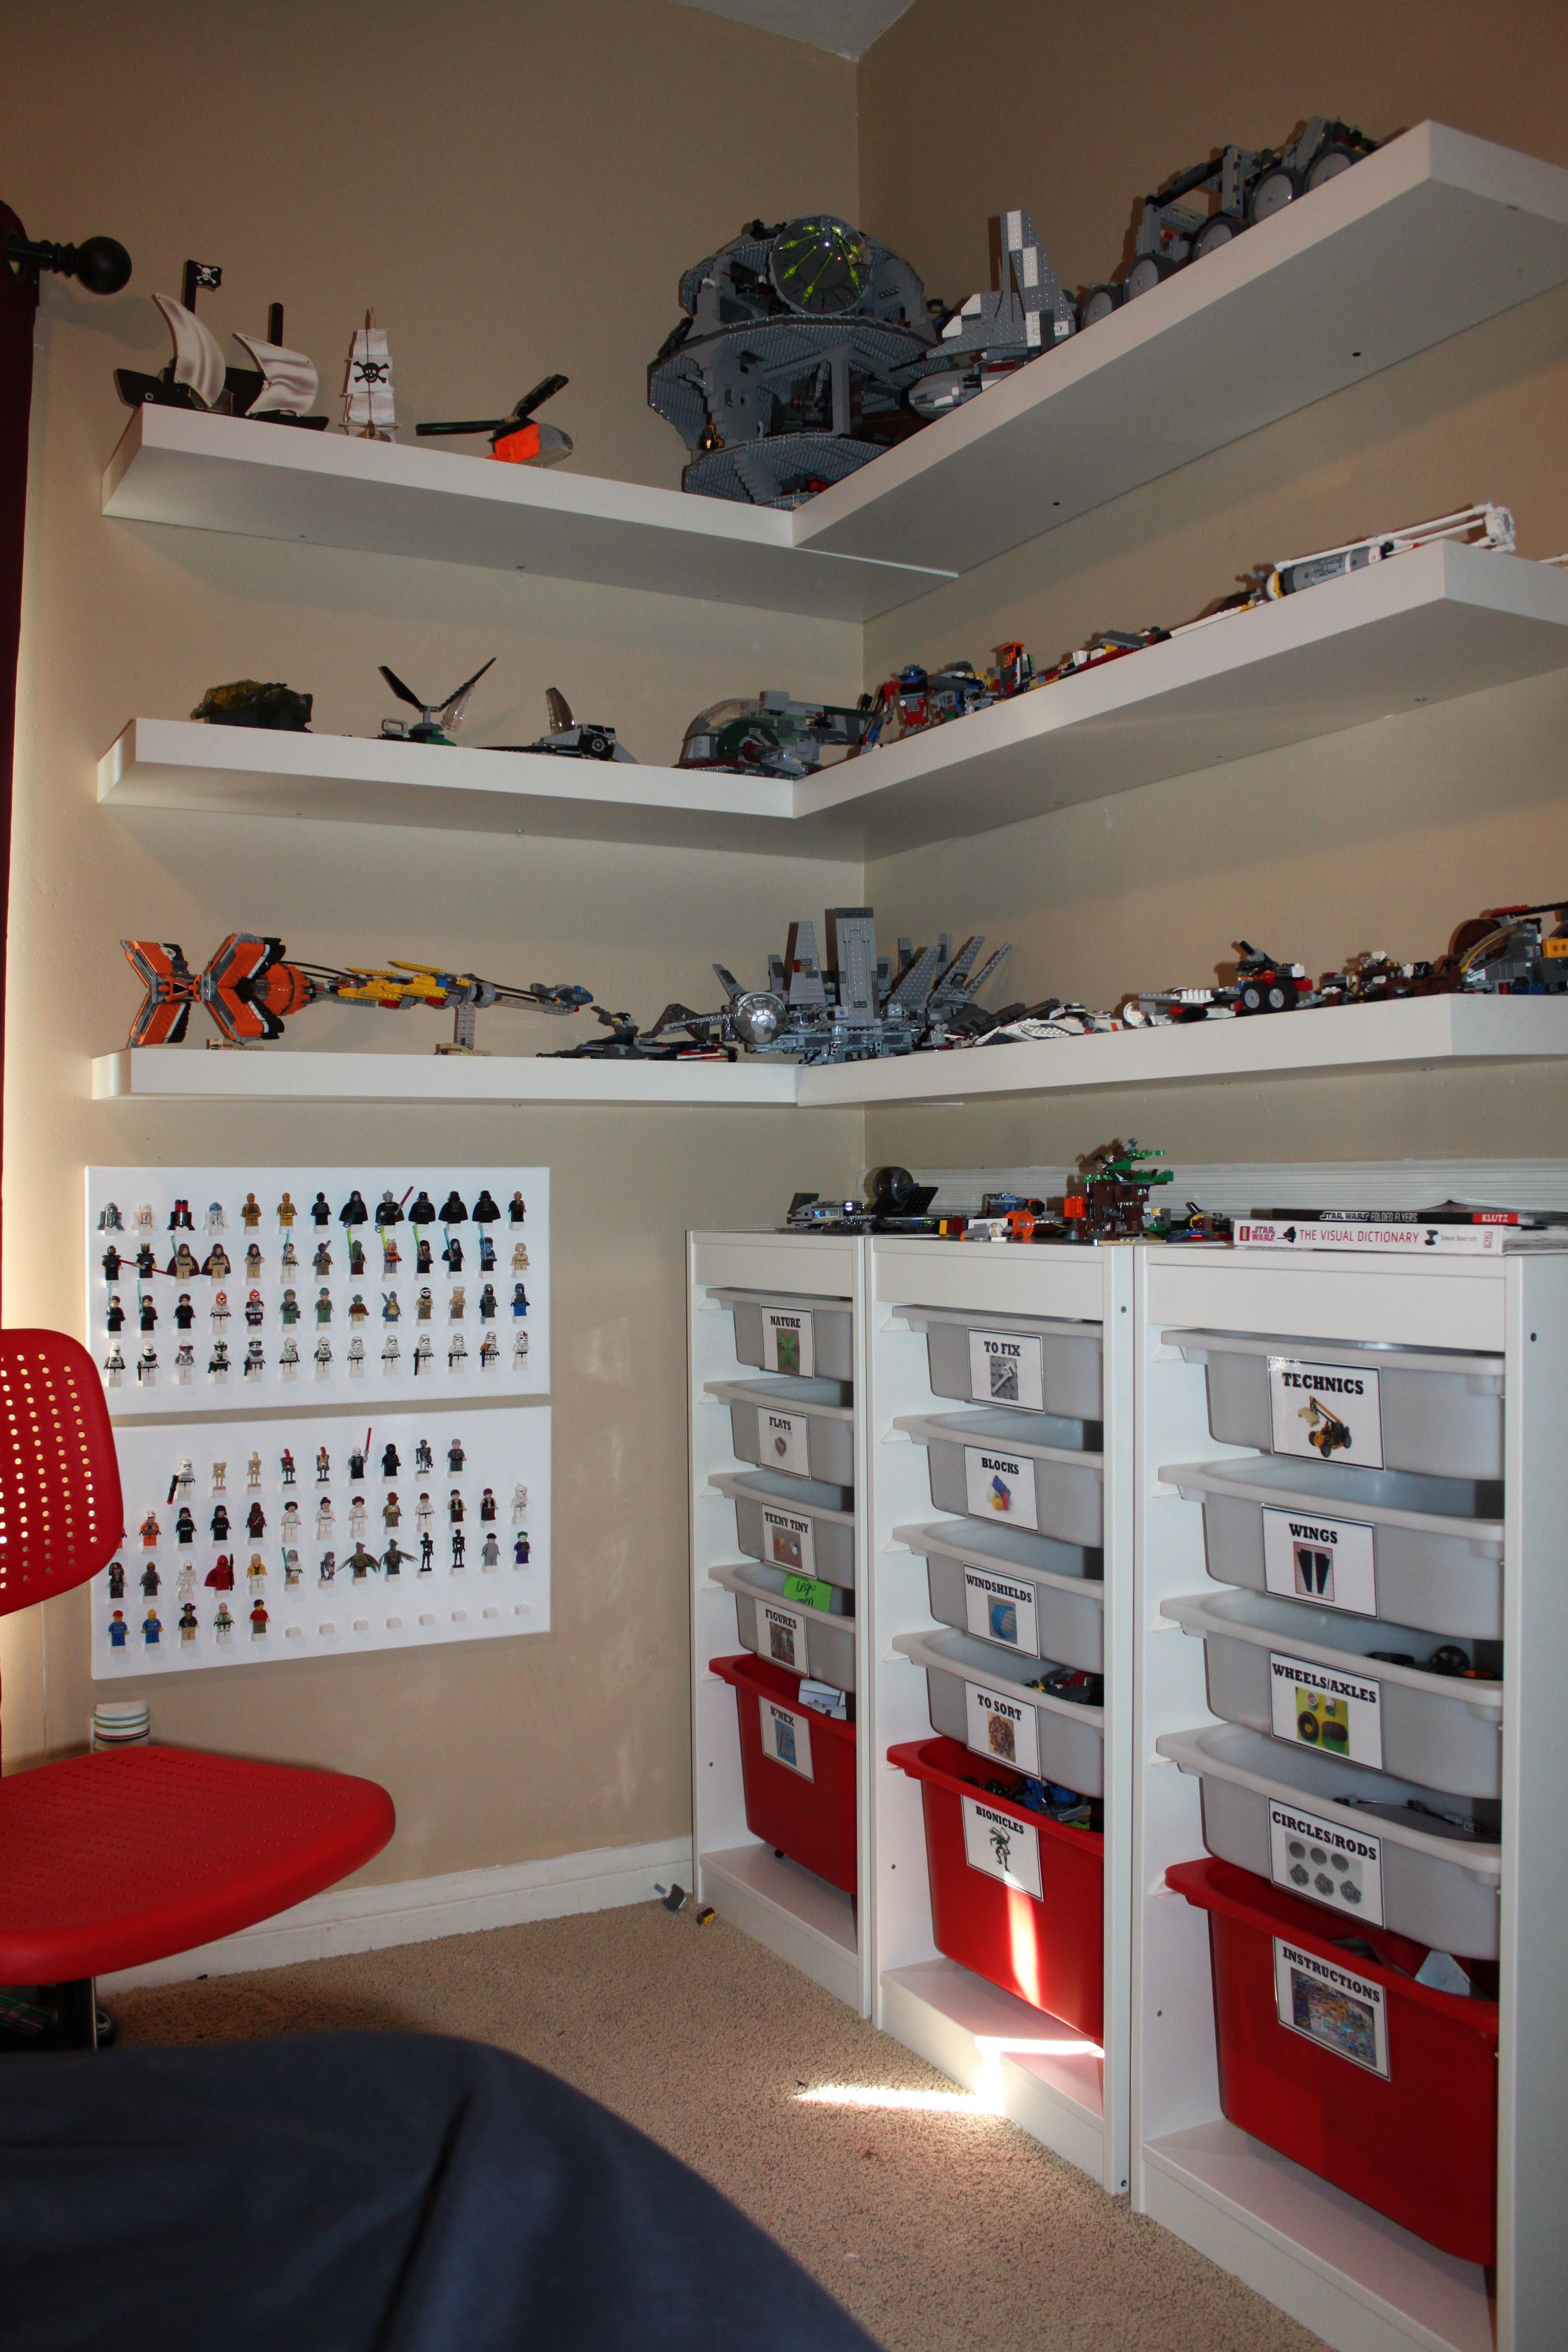 clay lego corner creation station made using ikea shelves and floating for display drawers laminated labels stuck them the with glue dots white shoe storage will command hooks